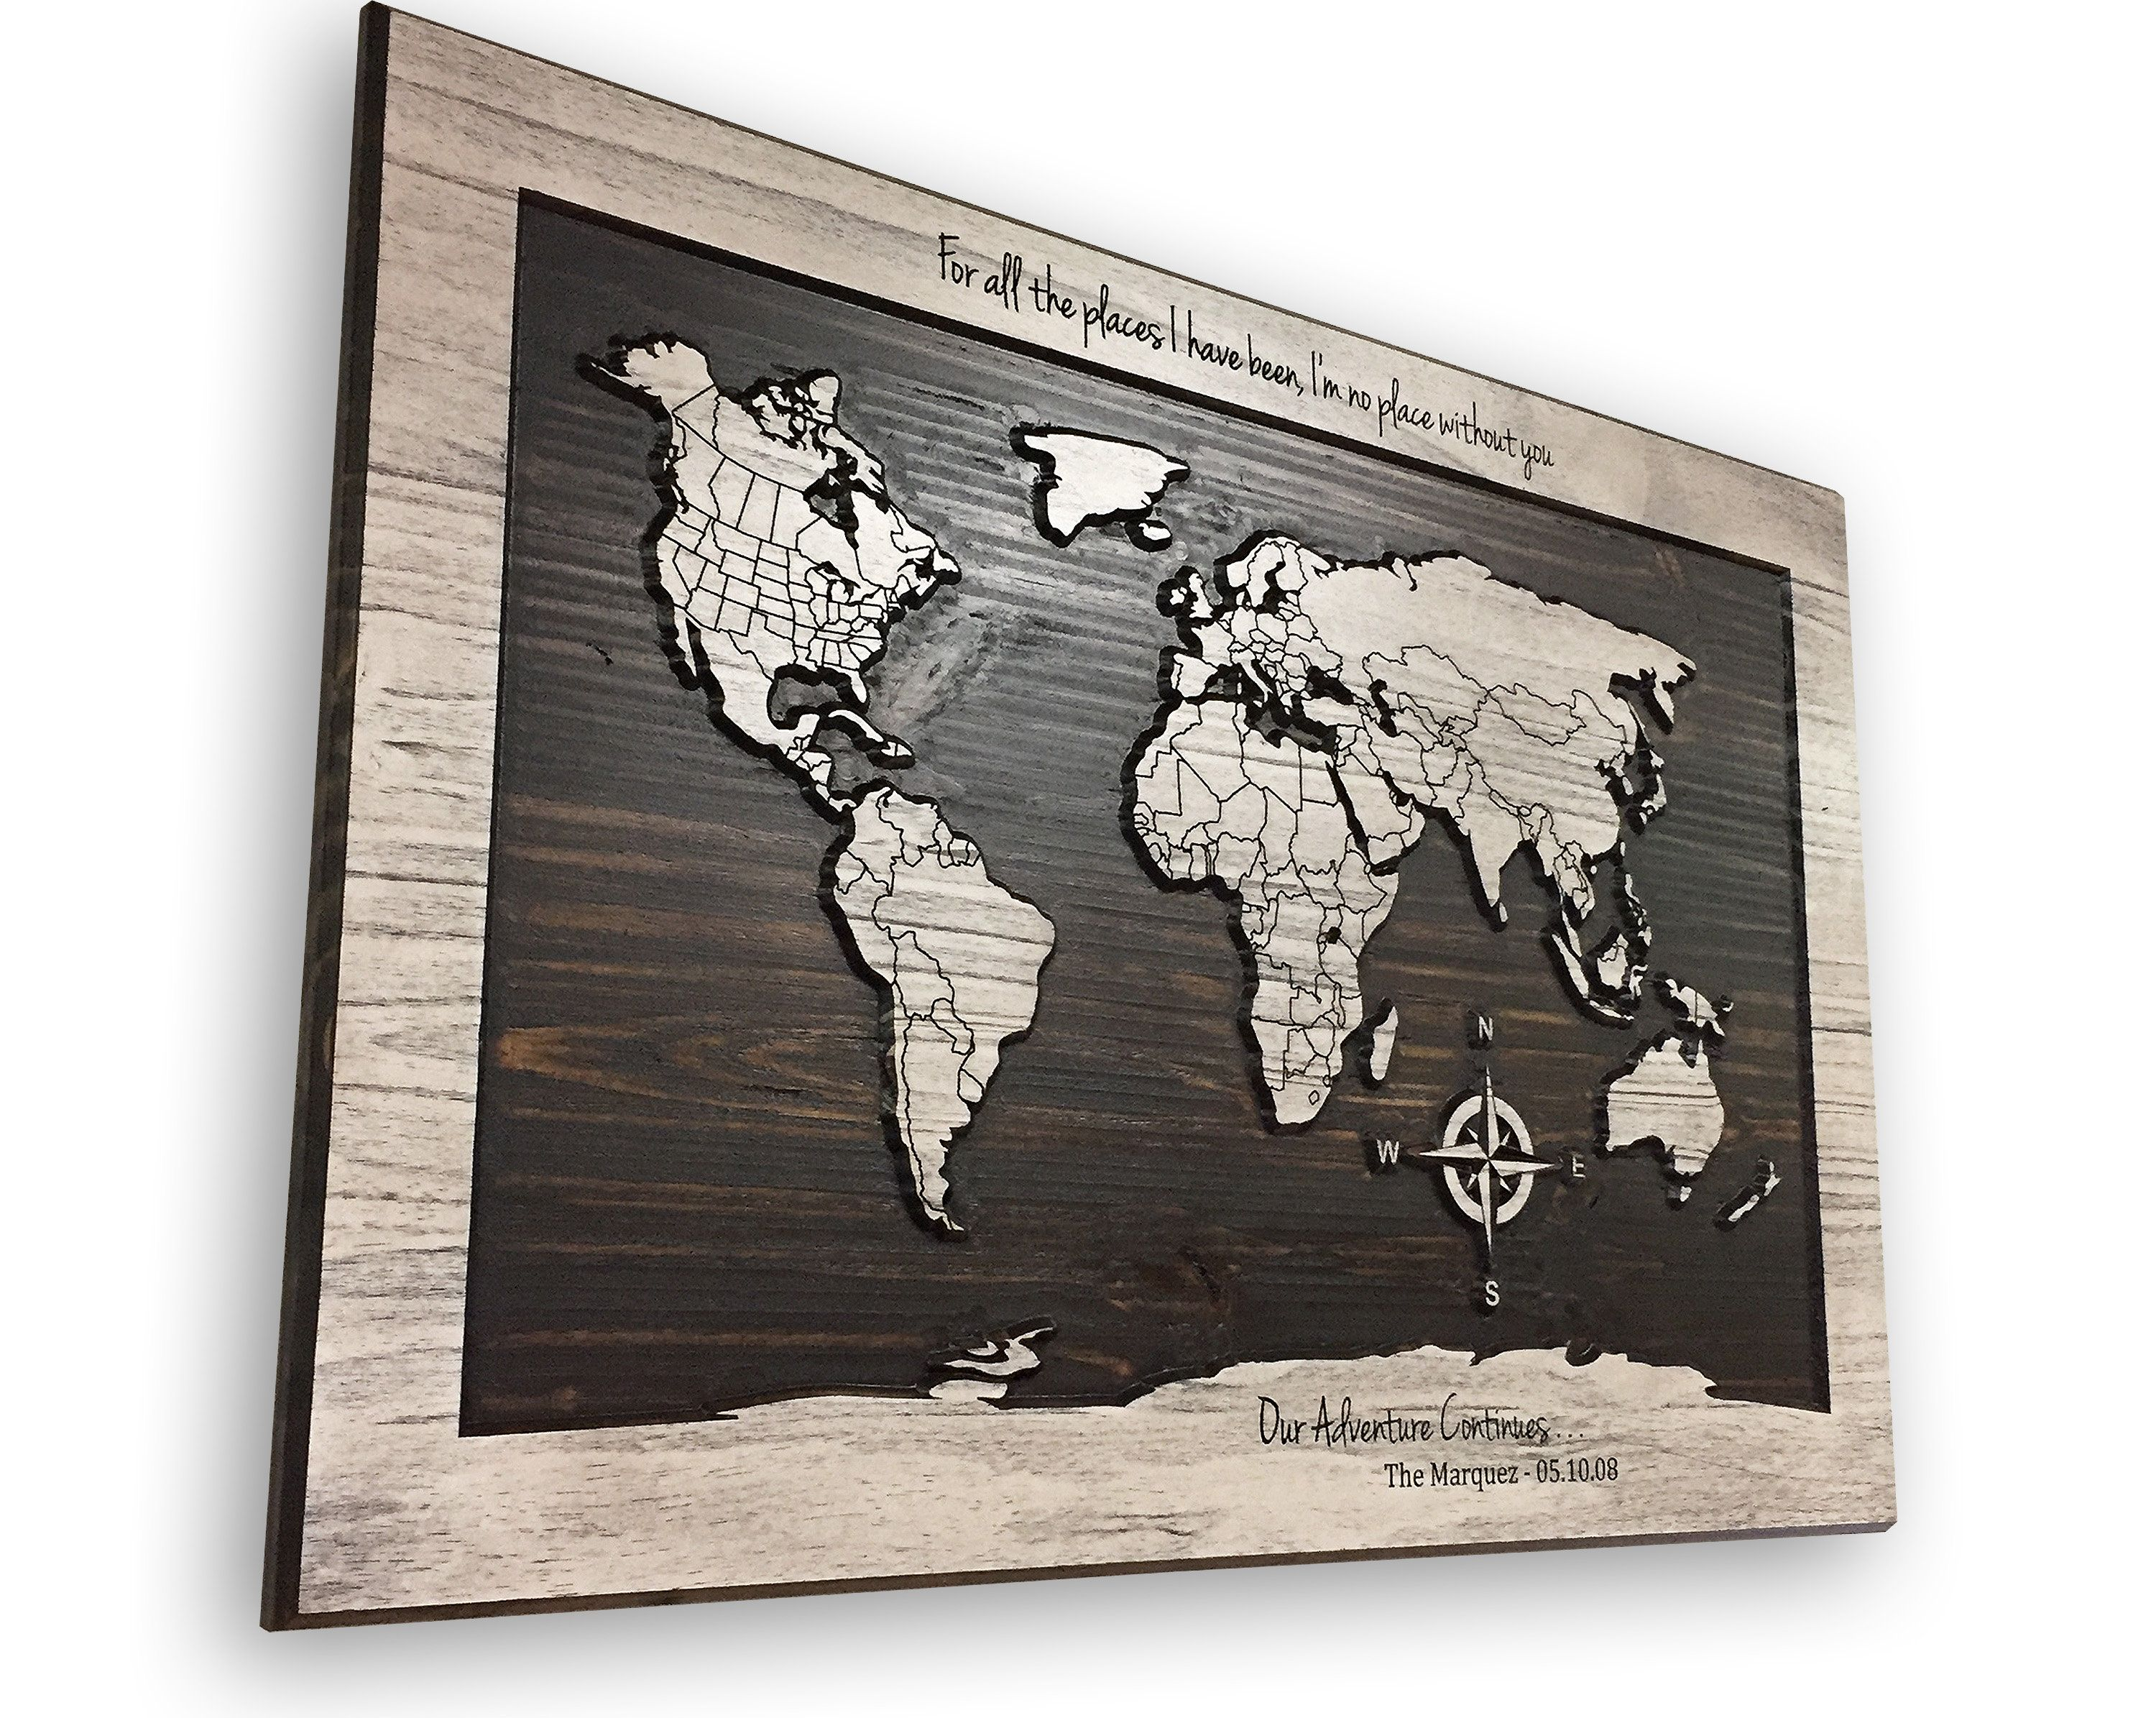 World map art home wall decor customize text country lines world map art home wall decor customize text country lines compass art adventure travel push pin mark locations anniversary gift gumiabroncs Choice Image